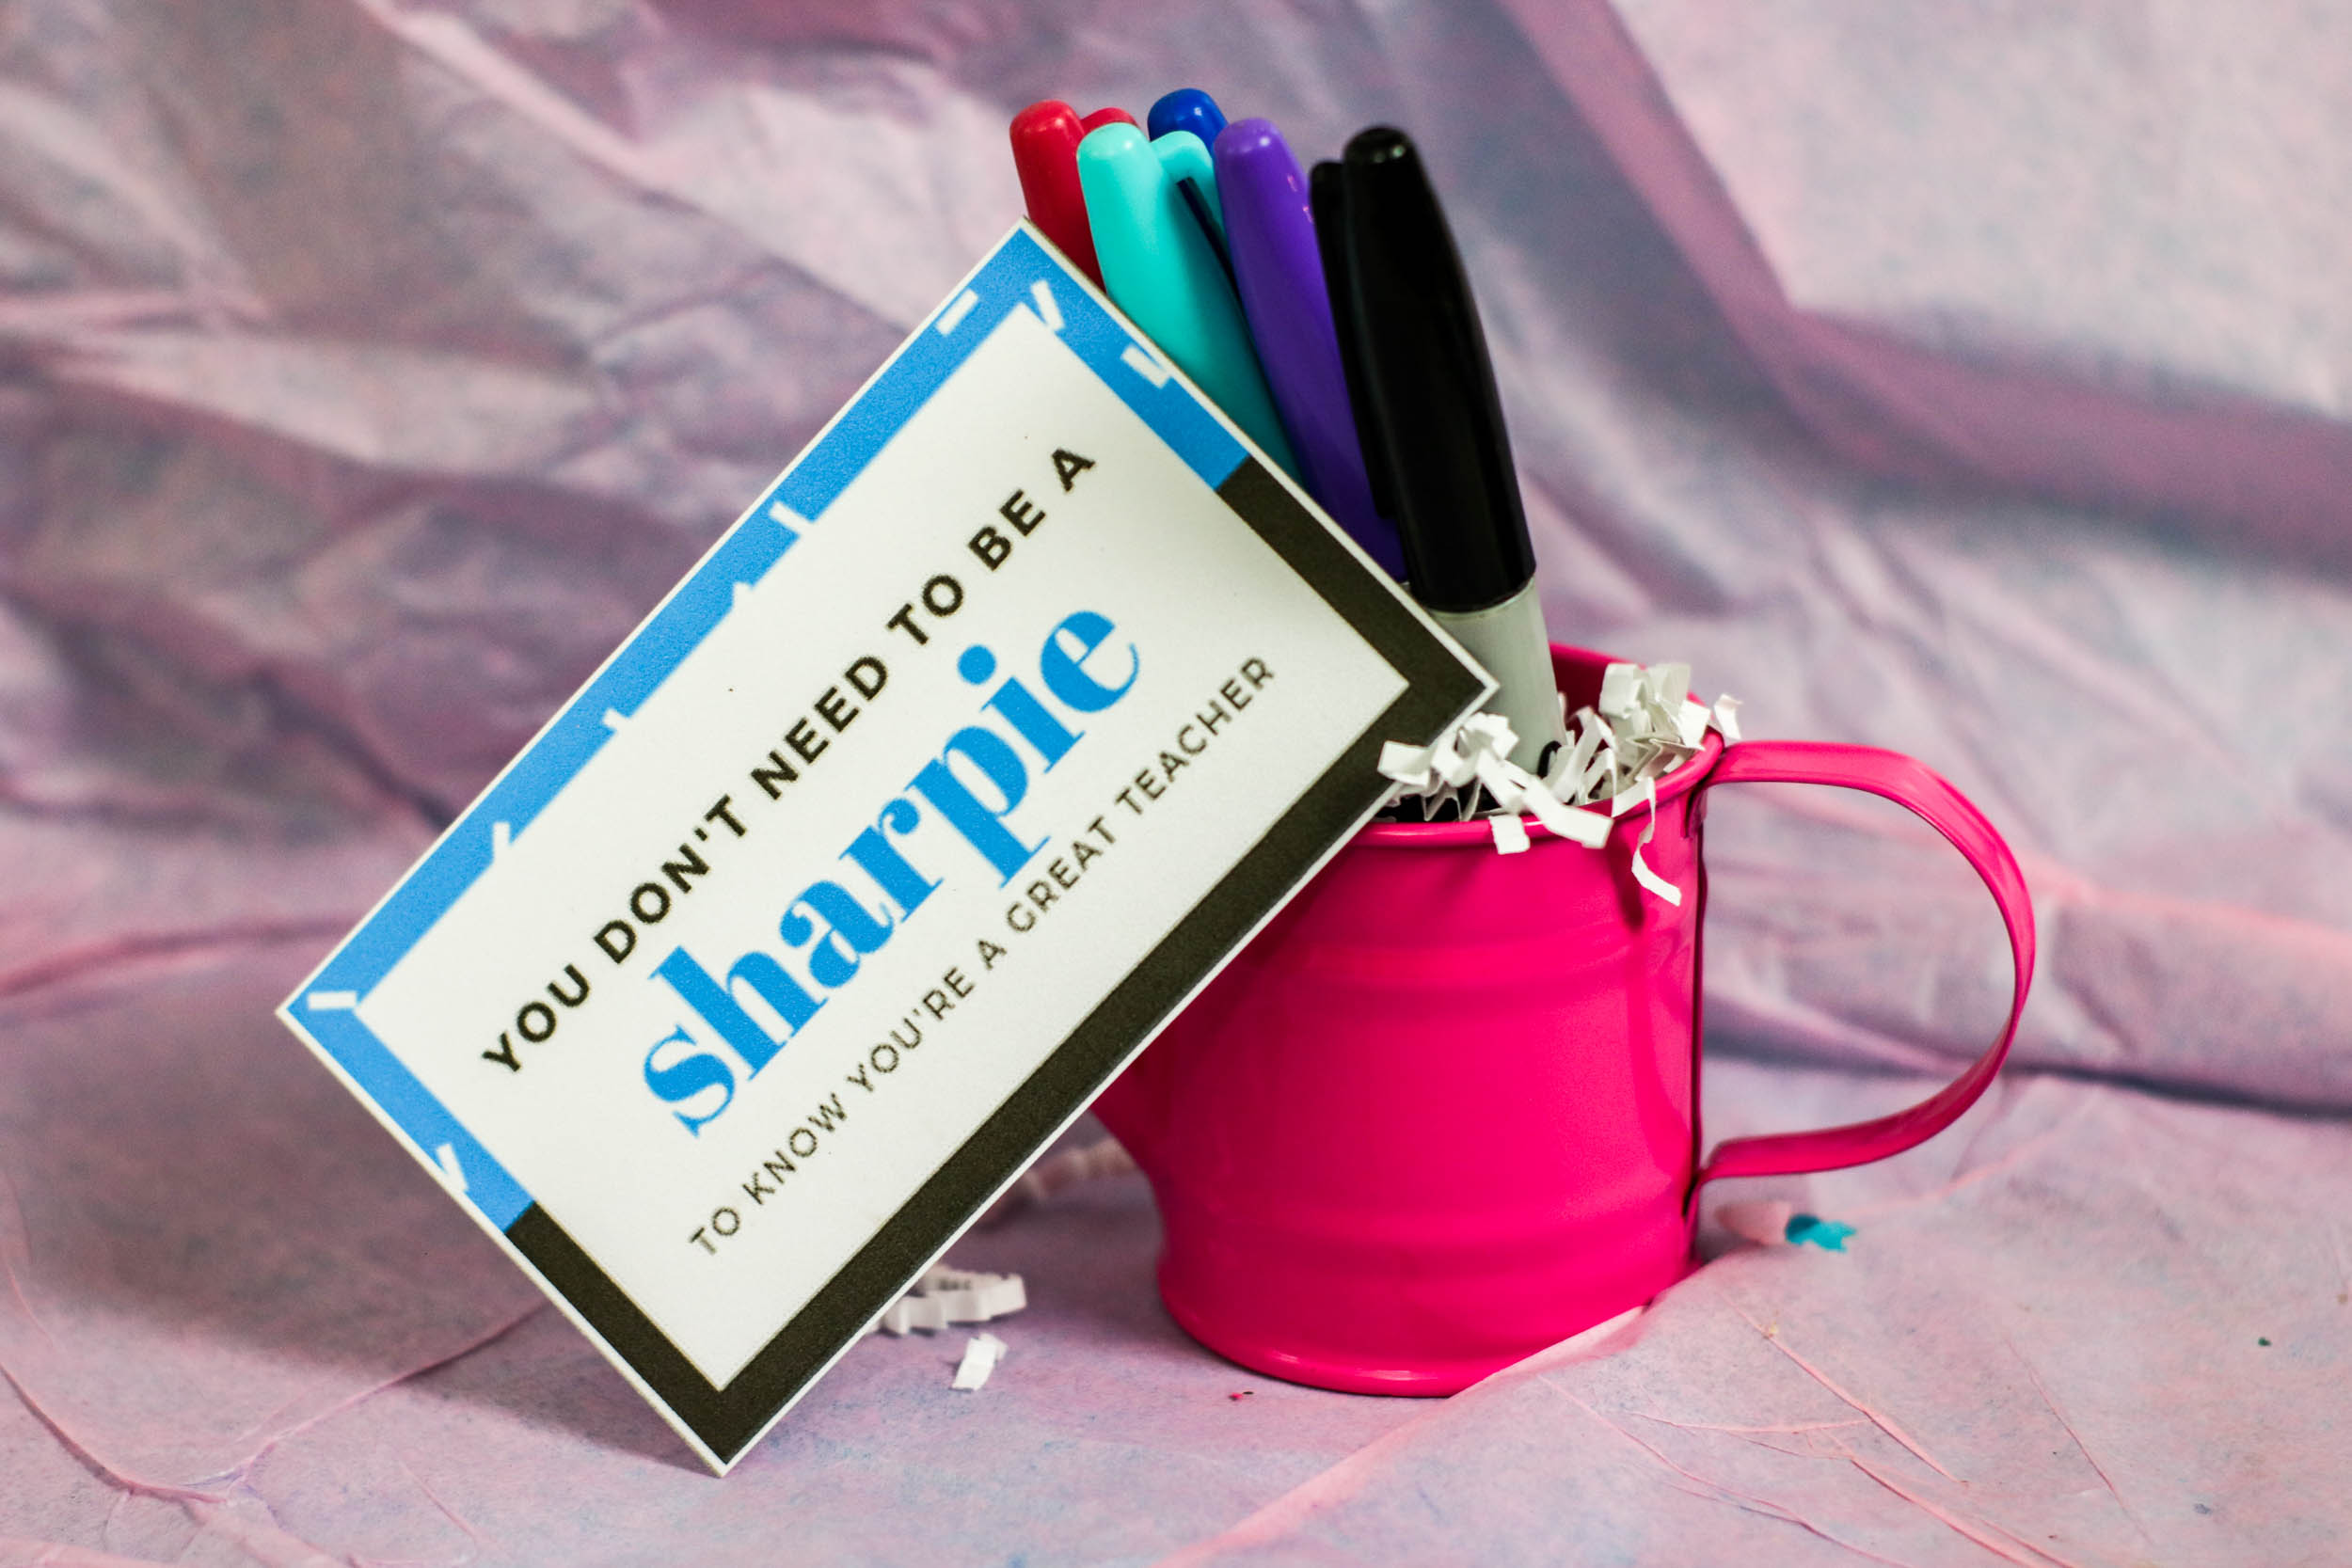 May 7th is Teacher's Appreciation Day. Show your kids teachers how much you appreciate them with this simple, but fun gift idea.